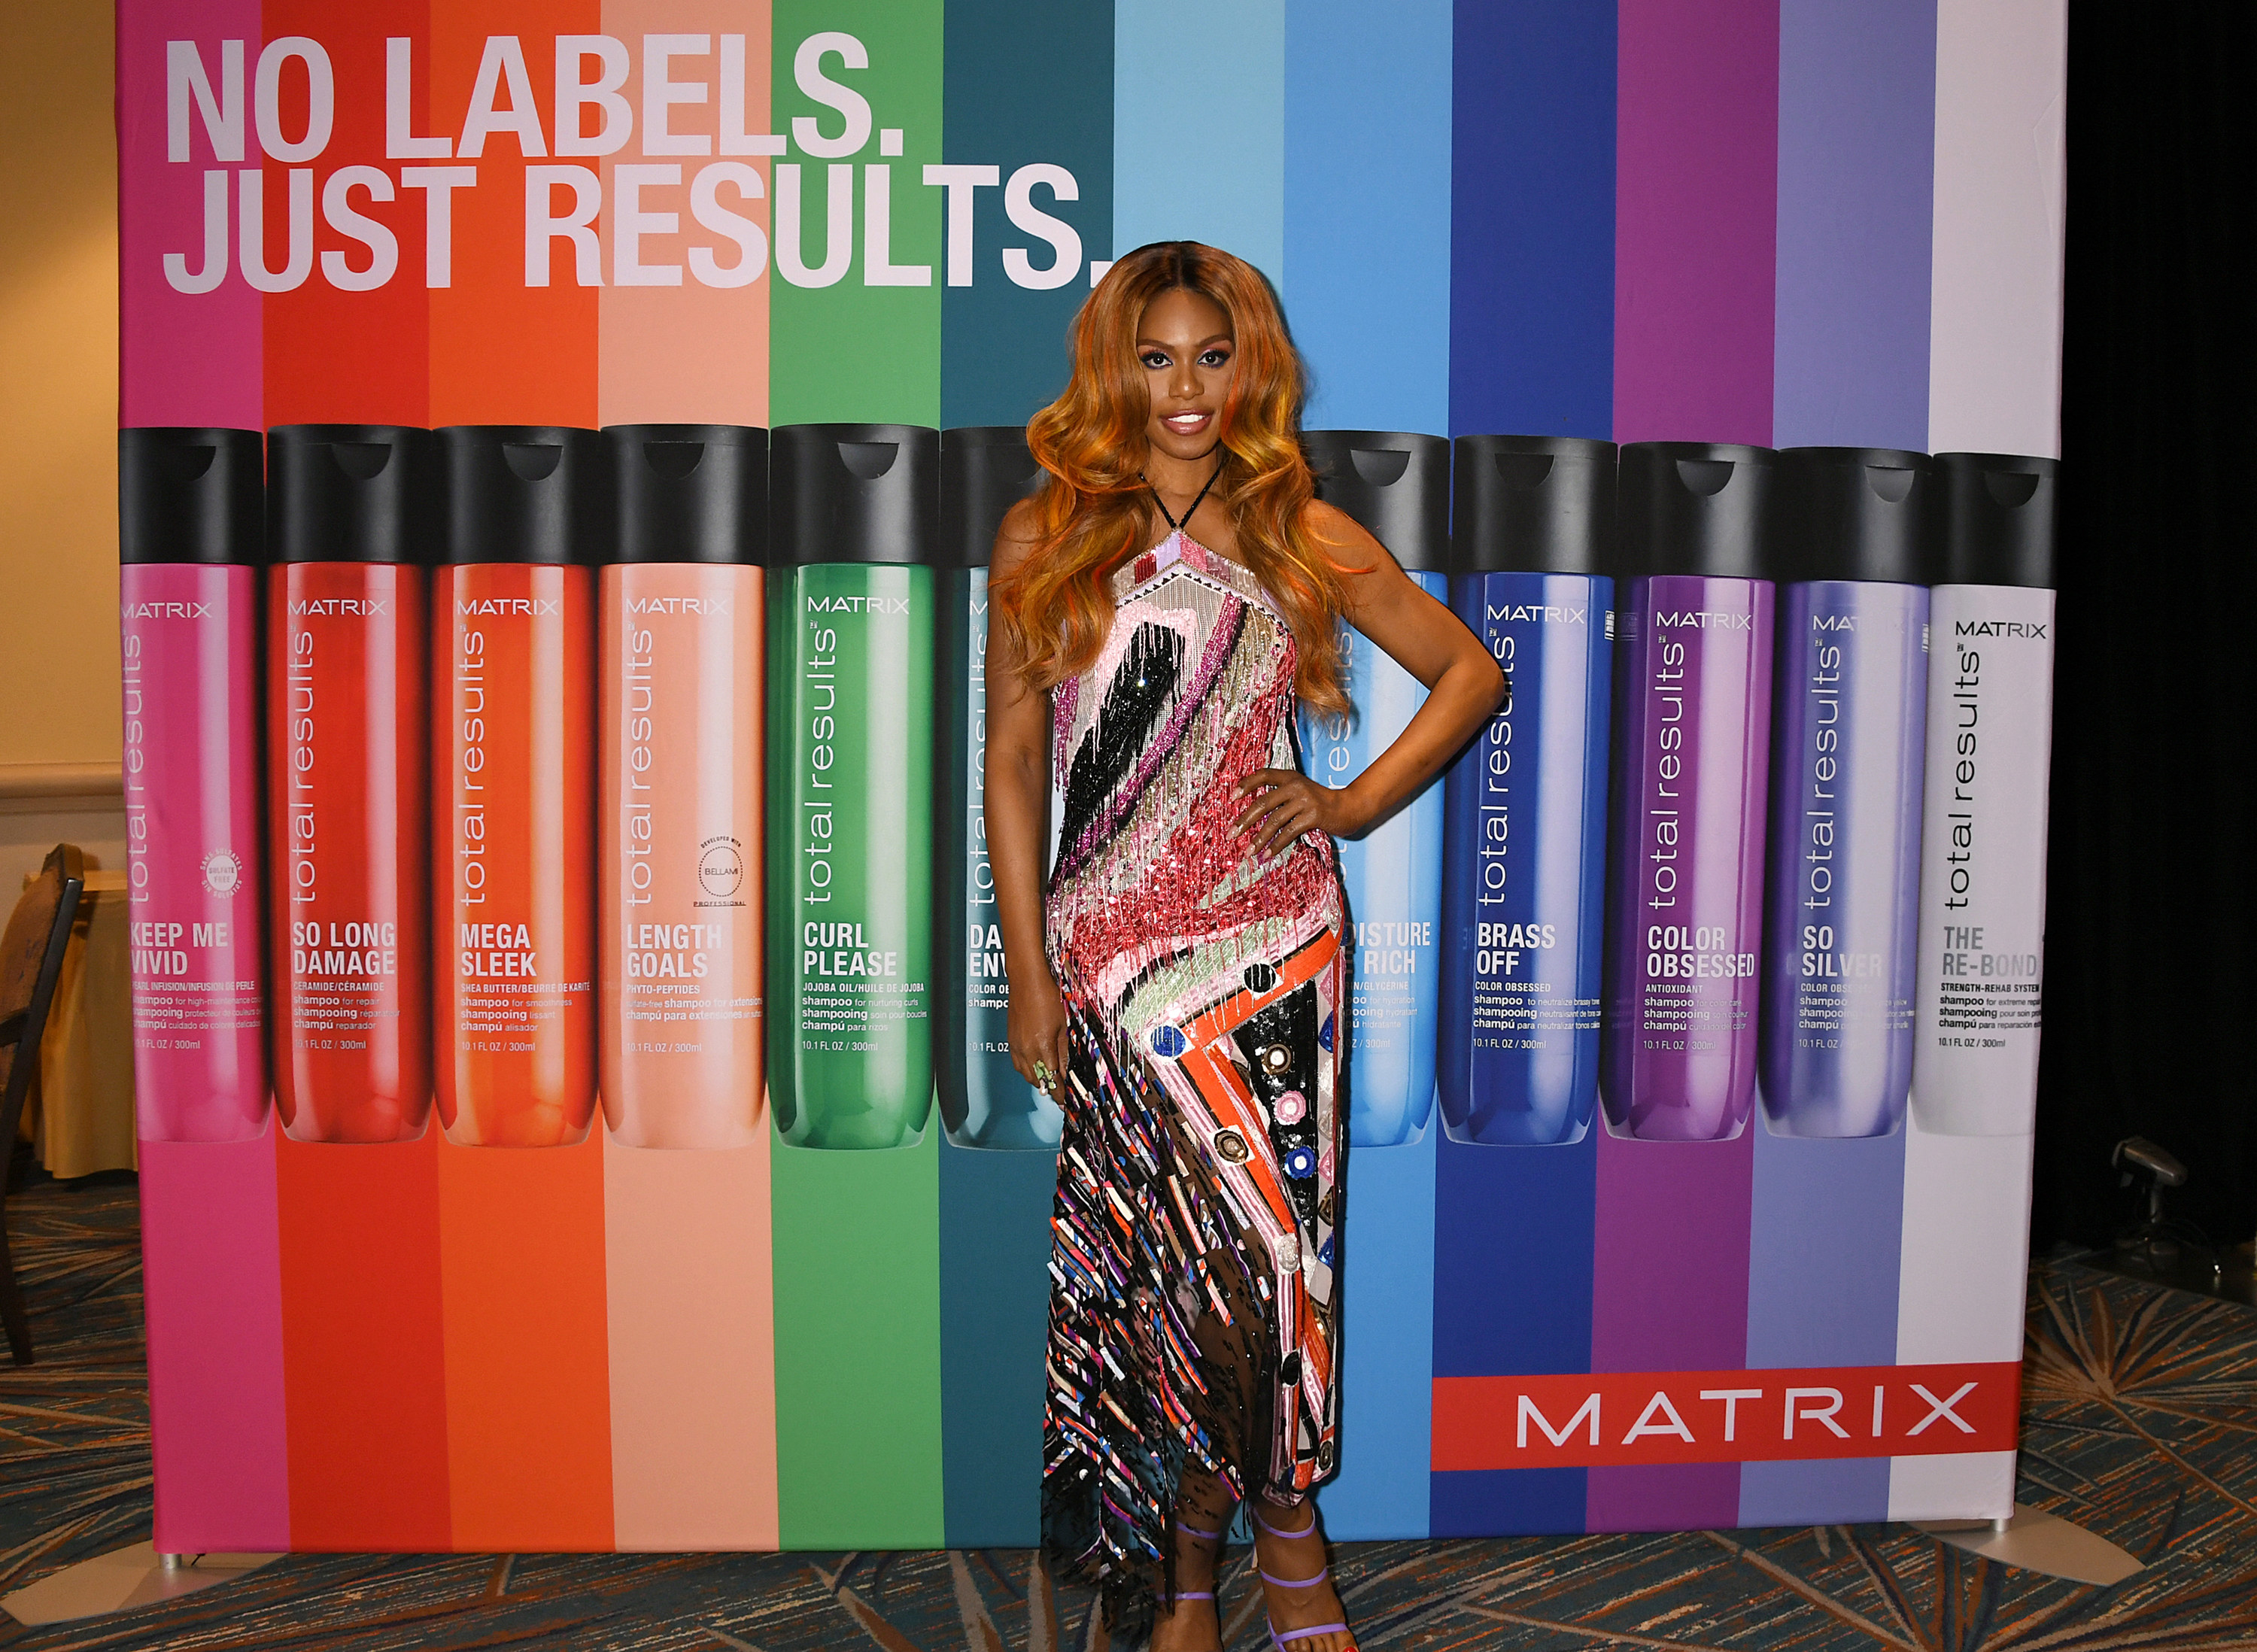 Laverne Cox wears a dress in front of a poster for Matrix-brand makeup products